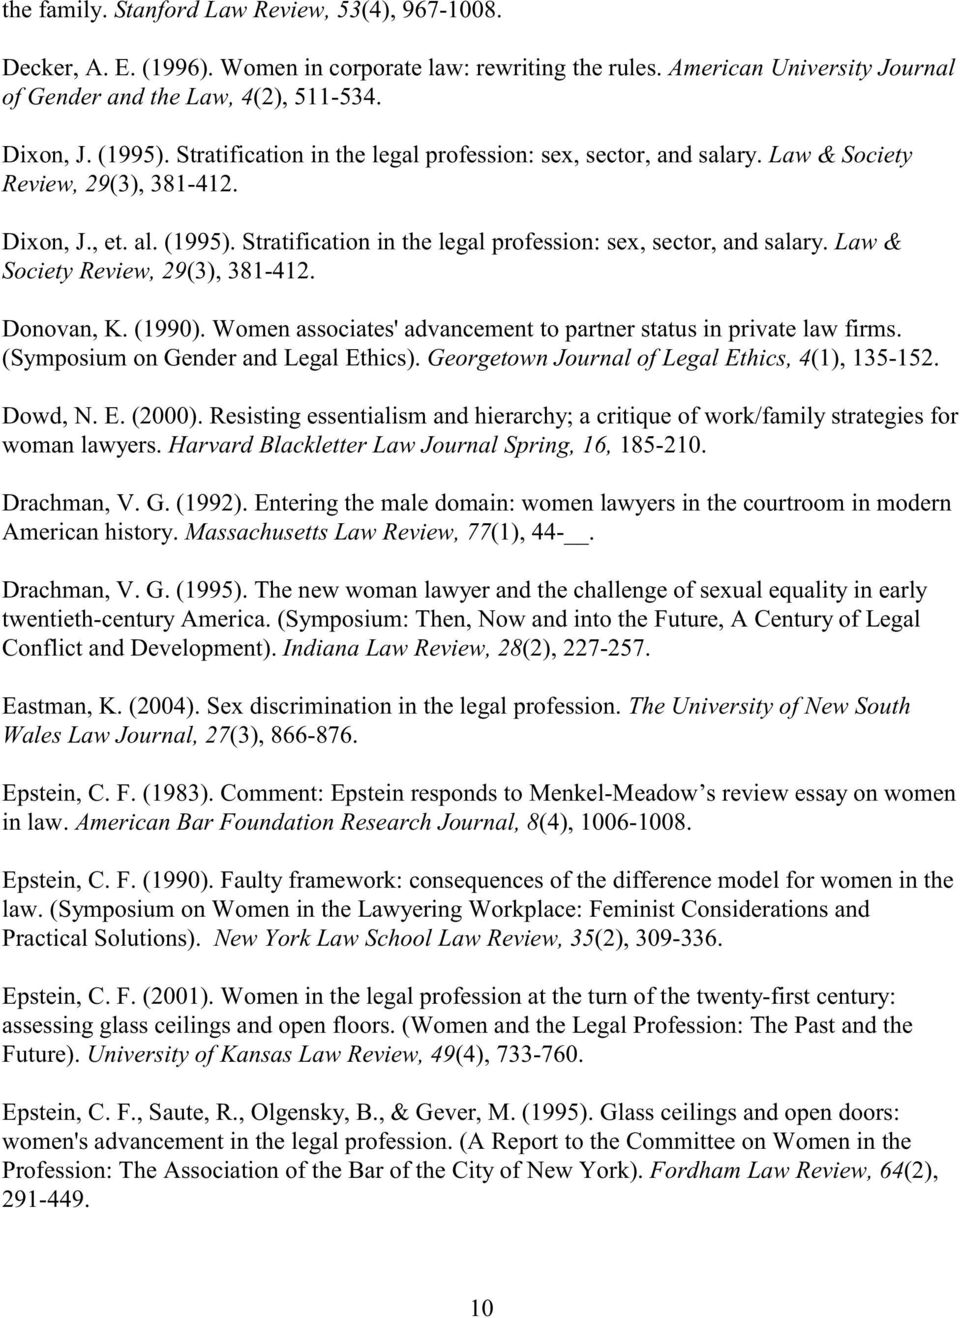 Law & Society Review, 29(3), 381-412. Donovan, K. (1990). Women associates' advancement to partner status in private law firms. (Symposium on Gender and Legal Ethics).